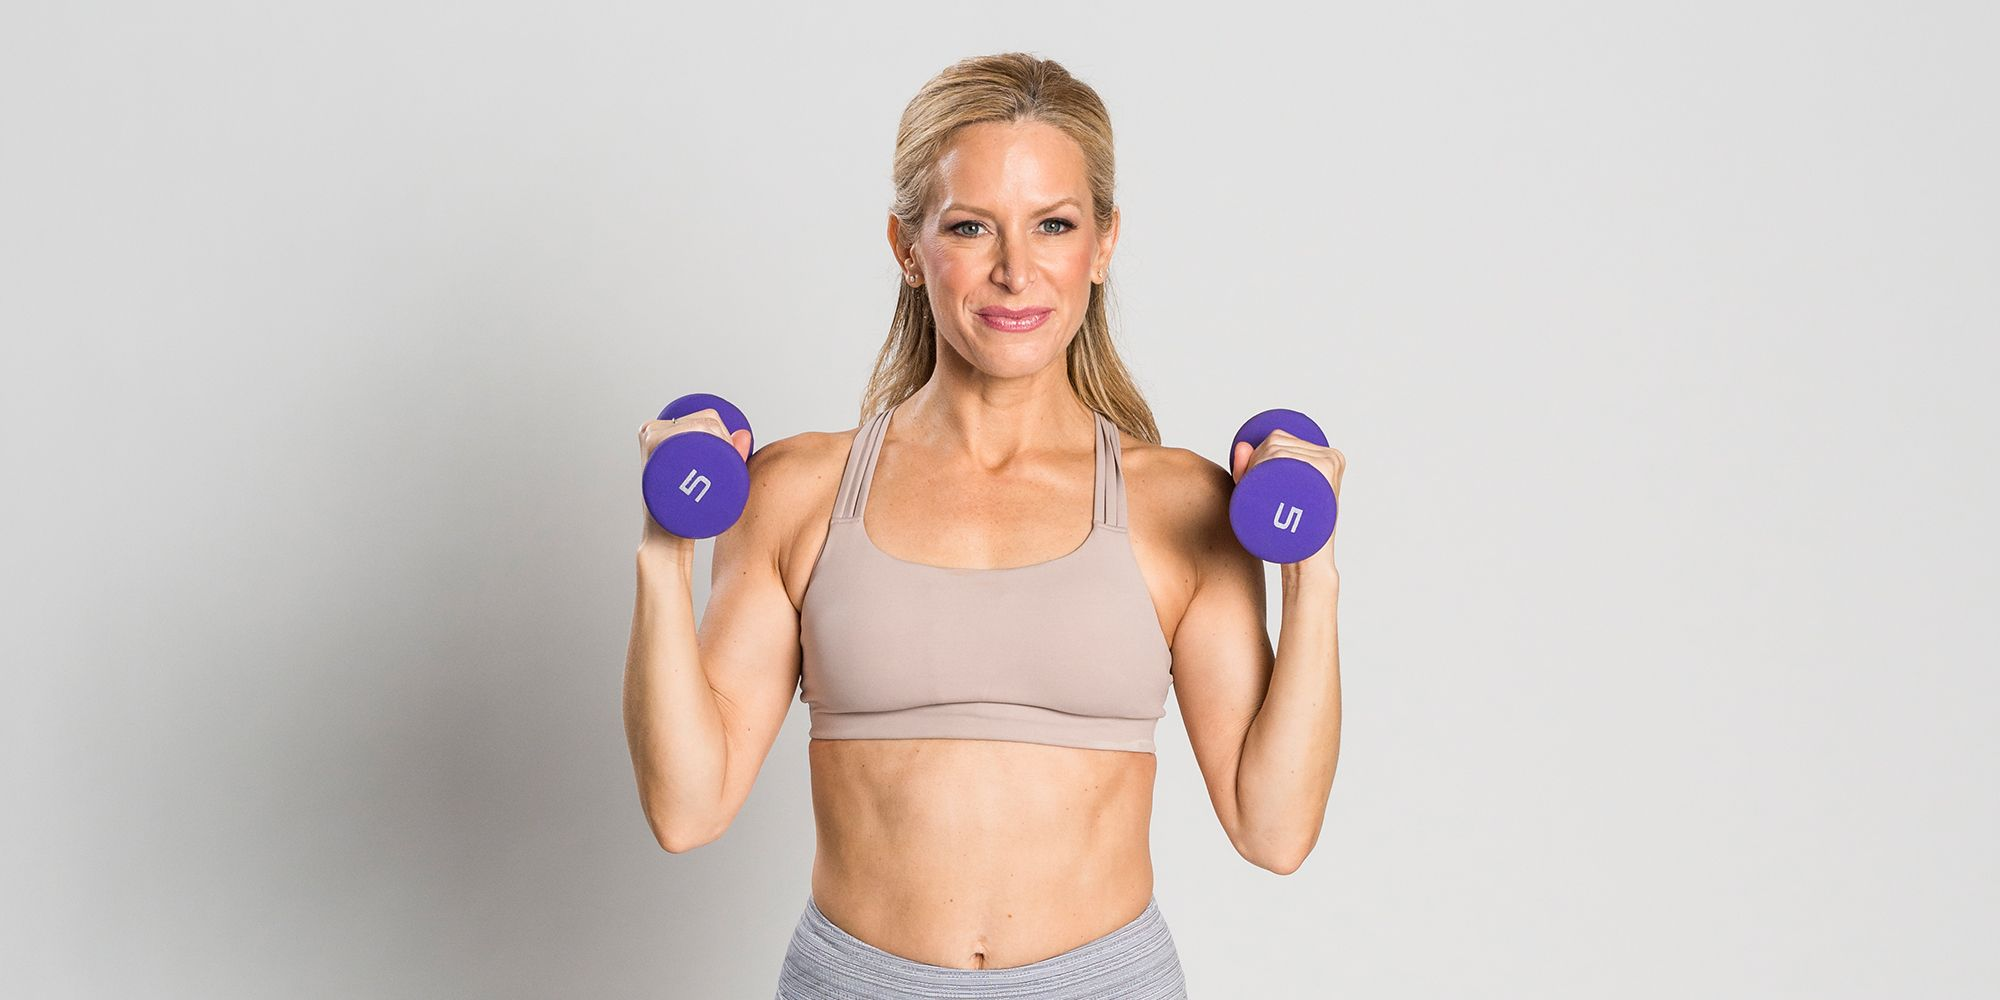 A Right Sports Bra Helps You With Workout